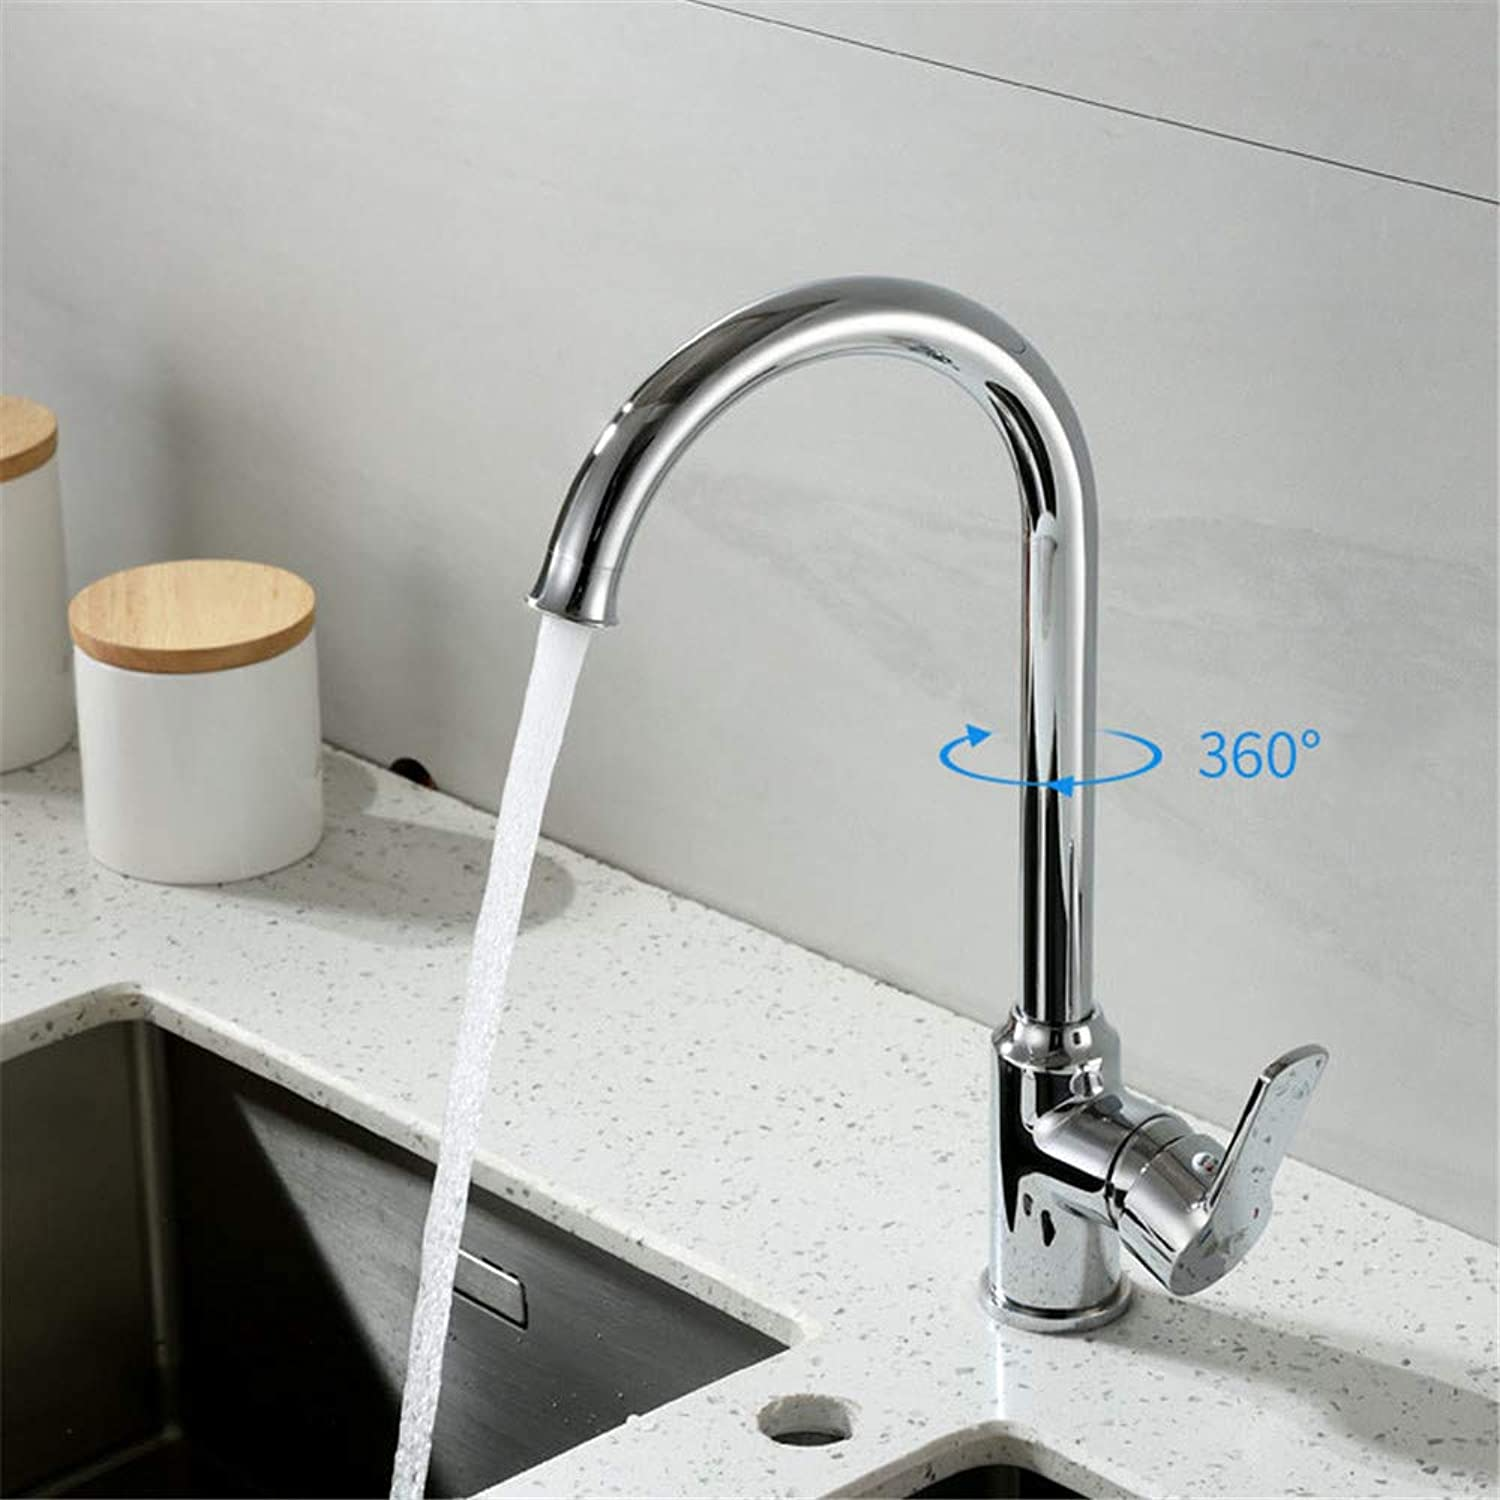 HHWY Kitchen sink faucet, all copper hot and cold water single handle greenical bubbler faucet 360° redating sink plating household deck inssizetion faucet